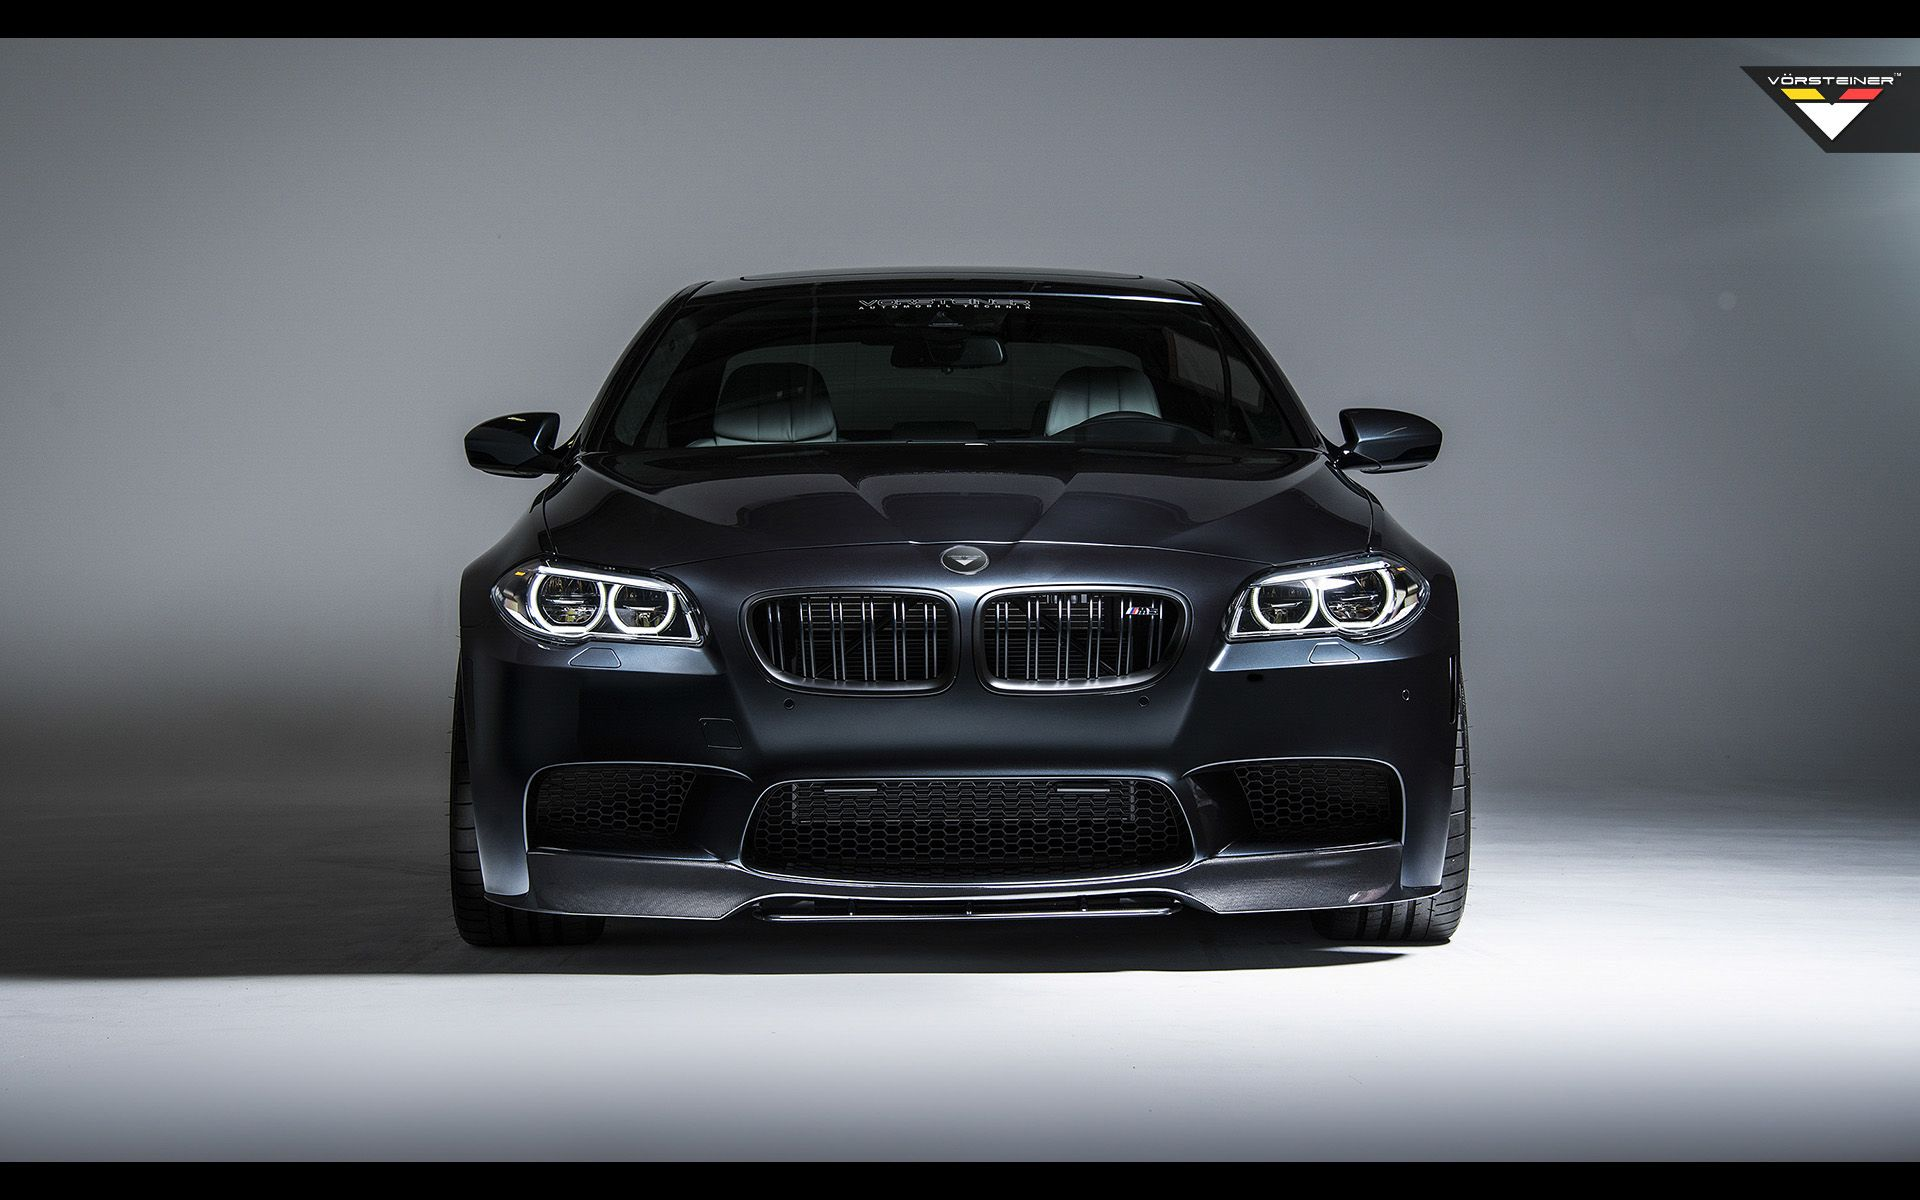 Bmw cars bmw 5 series bmw f10 wallpaper 1920x1200 63163